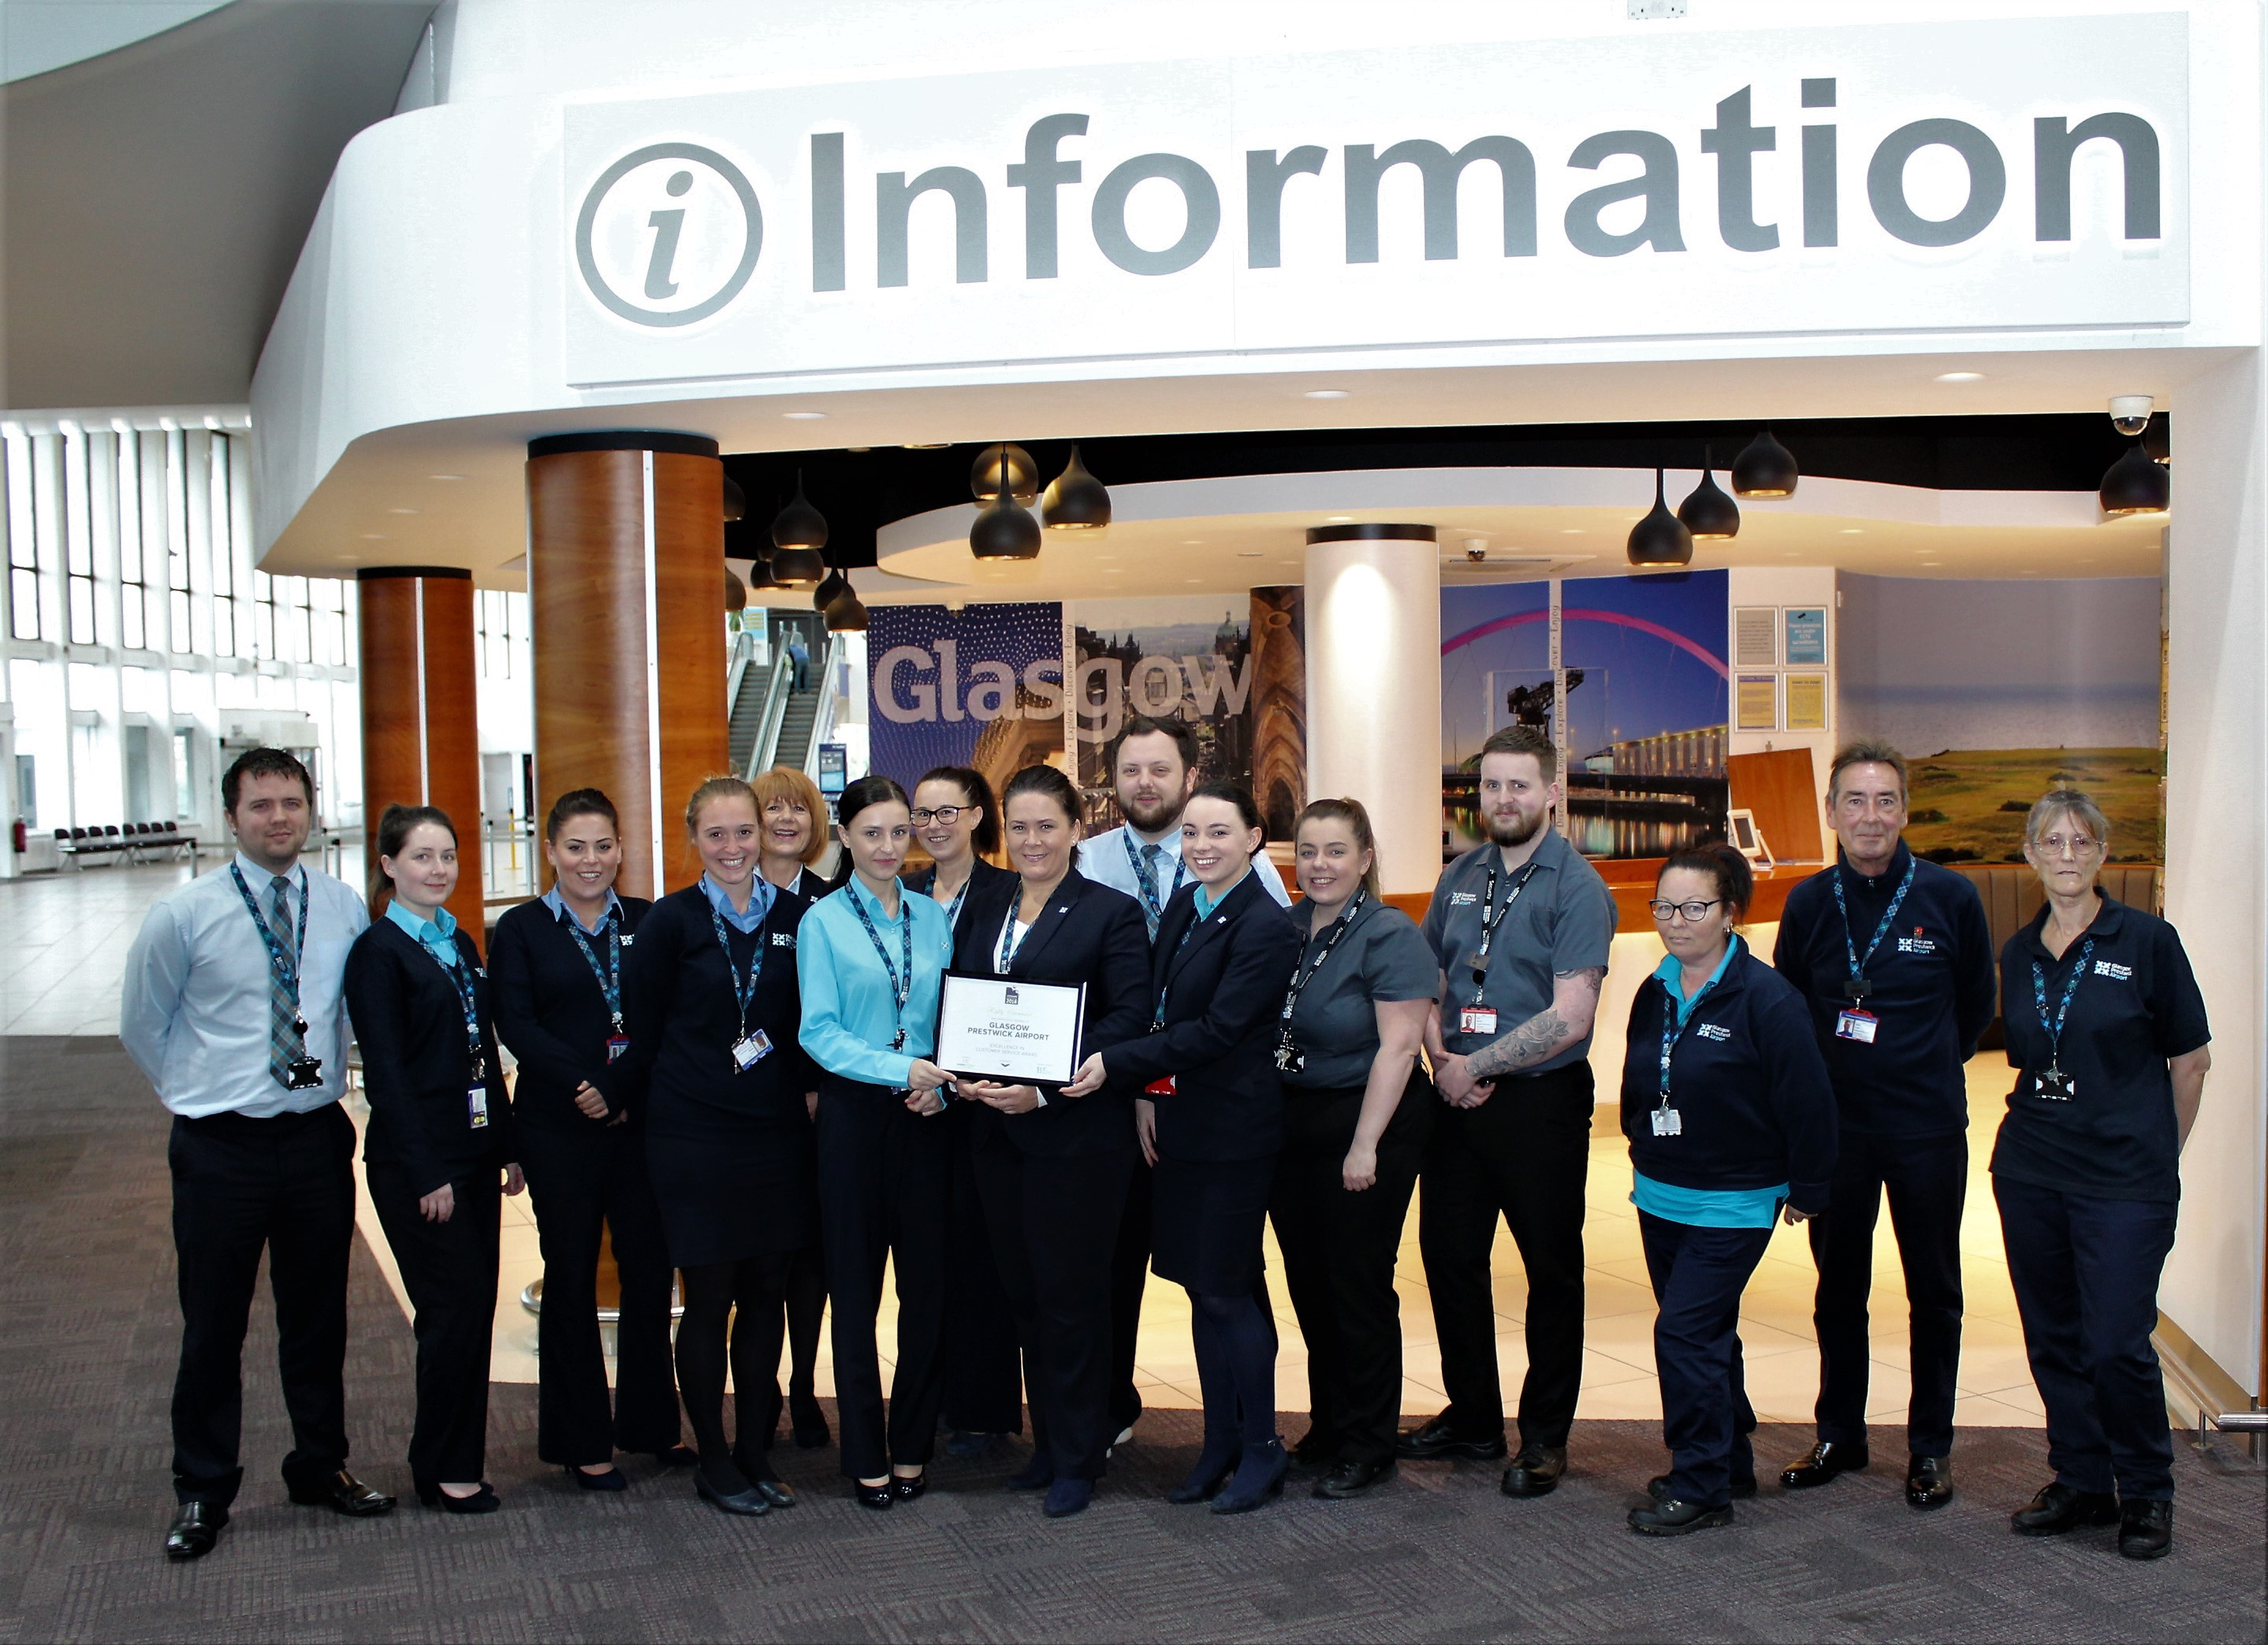 Glasgow Prestwick Airport - Highly commended for their